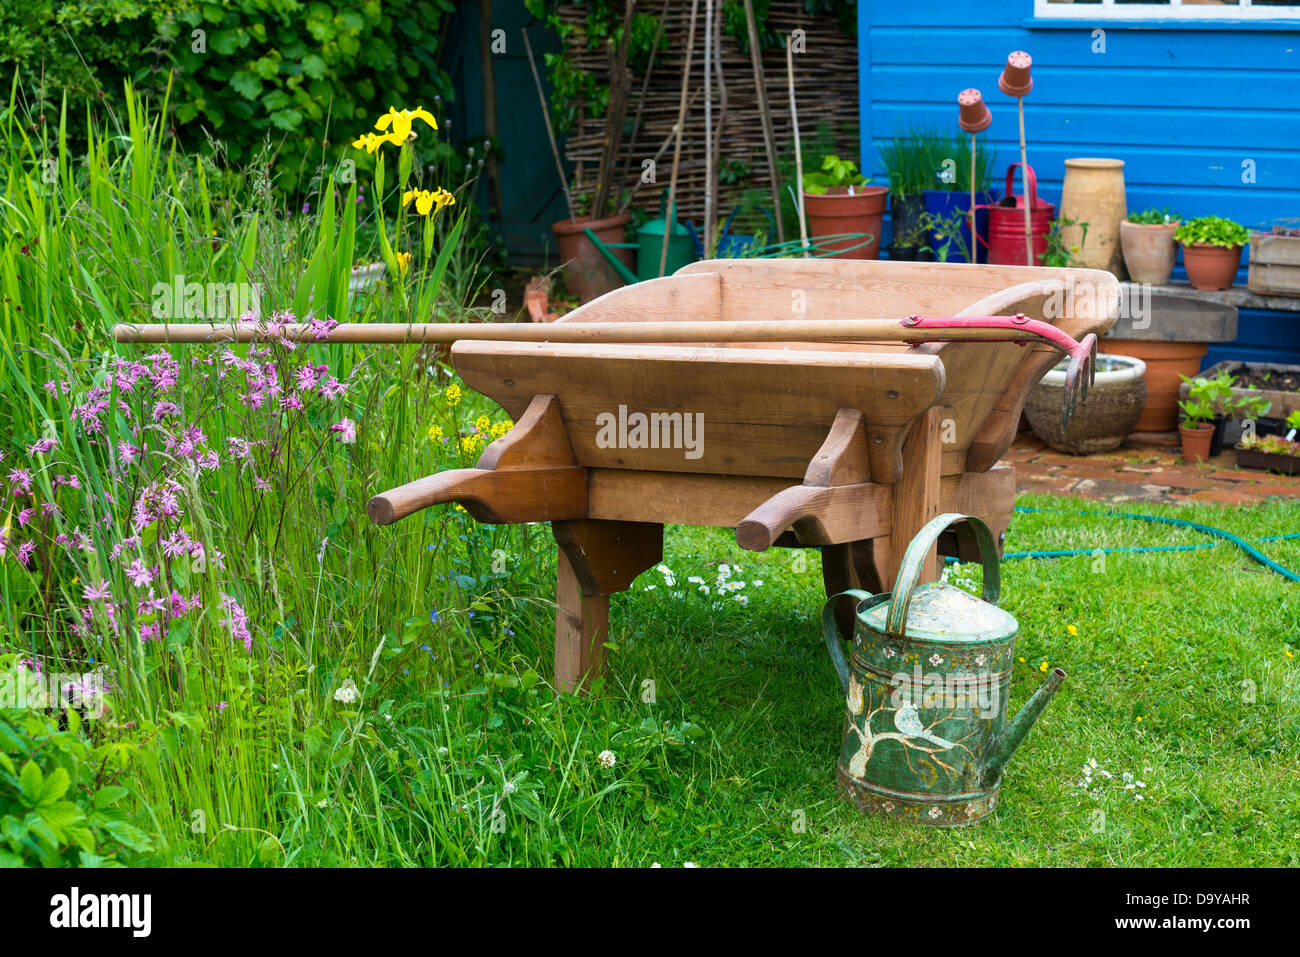 Country garden scene with wooden wheelbarrow, blue potting shed and wildlife area to the left, Norfolk, England, - Stock Image